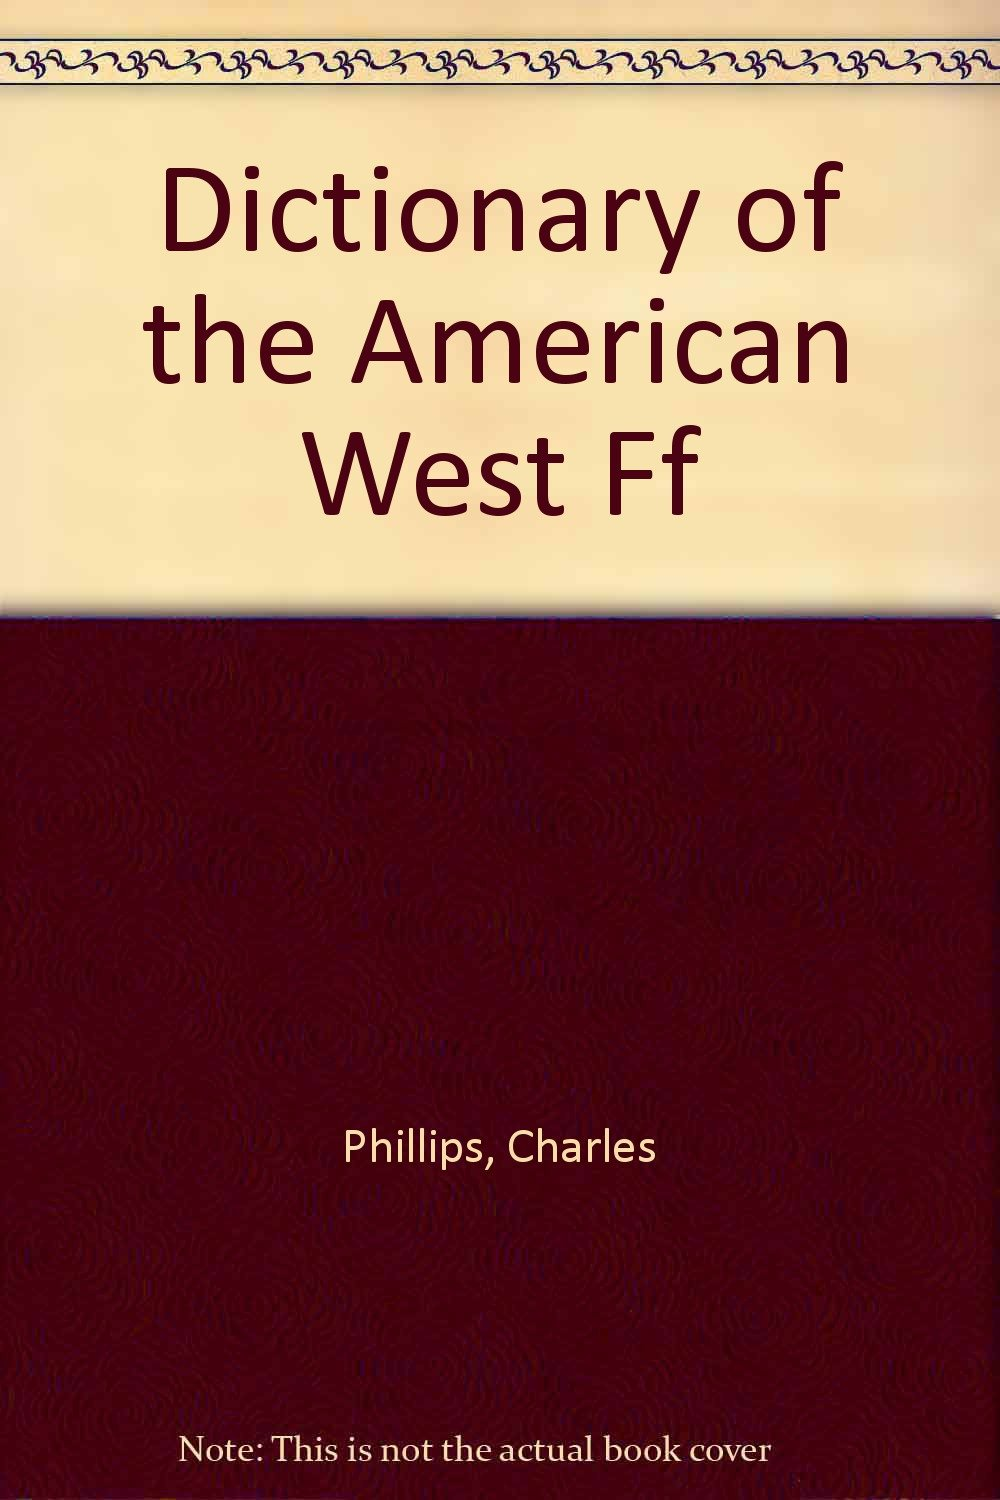 Dictionary of the American West Ff: Charles Phillips: Amazon.com.au: Books